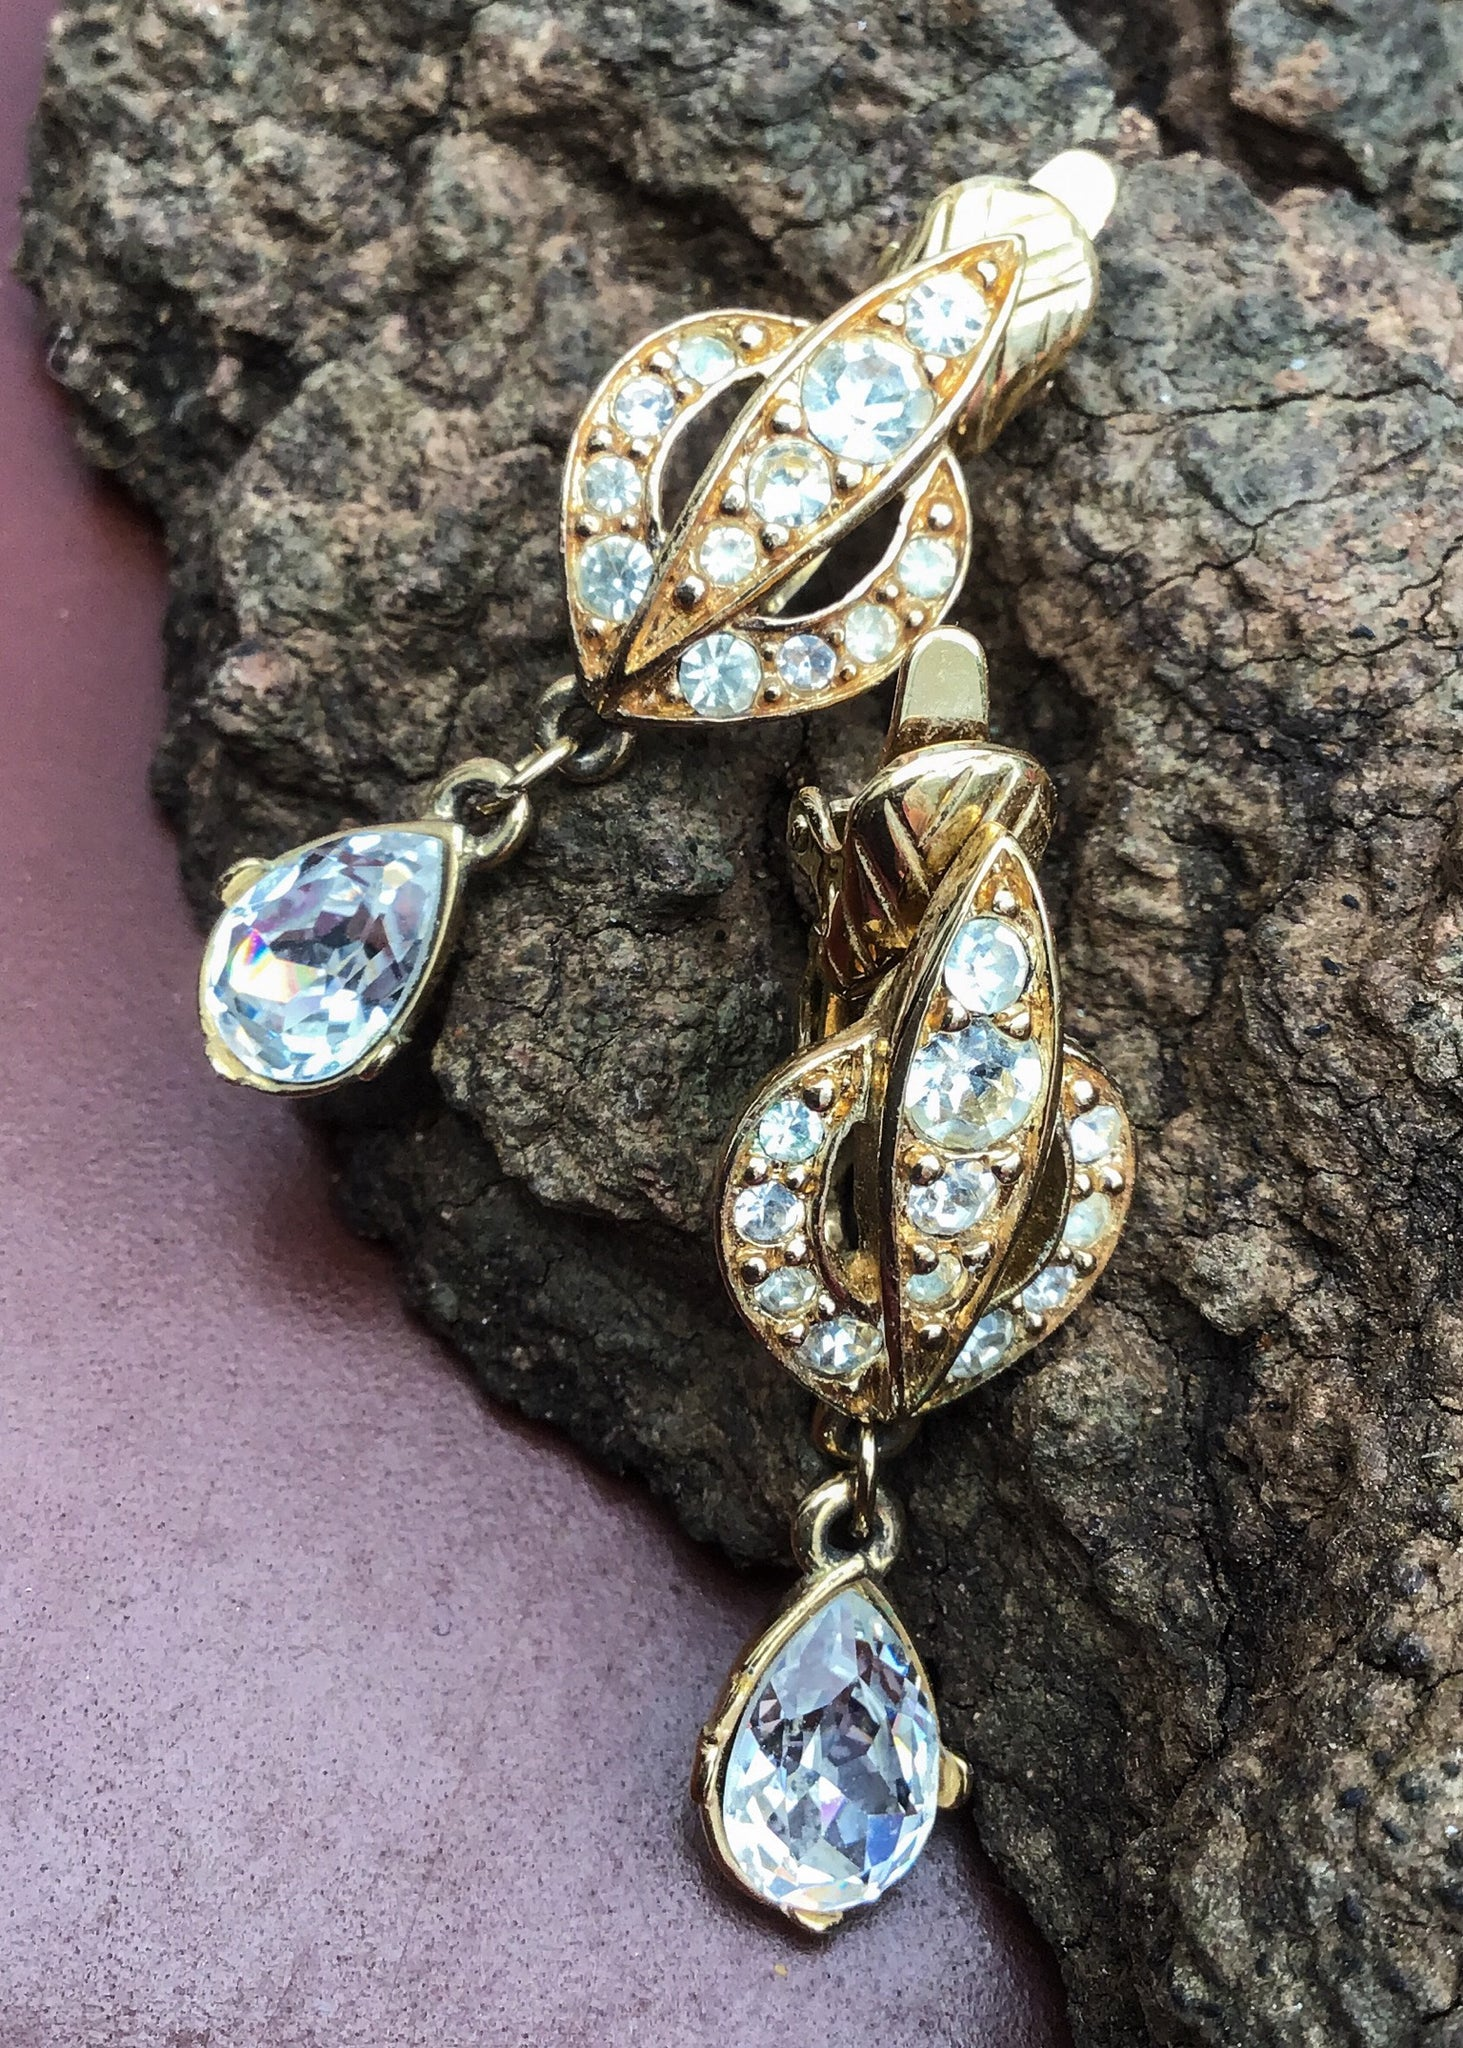 Trifari TM gangle crystal diamonte earrings, on a gold tone with the sparkliest stones ever. Perfect old hollywood glamour vintage jewellery.